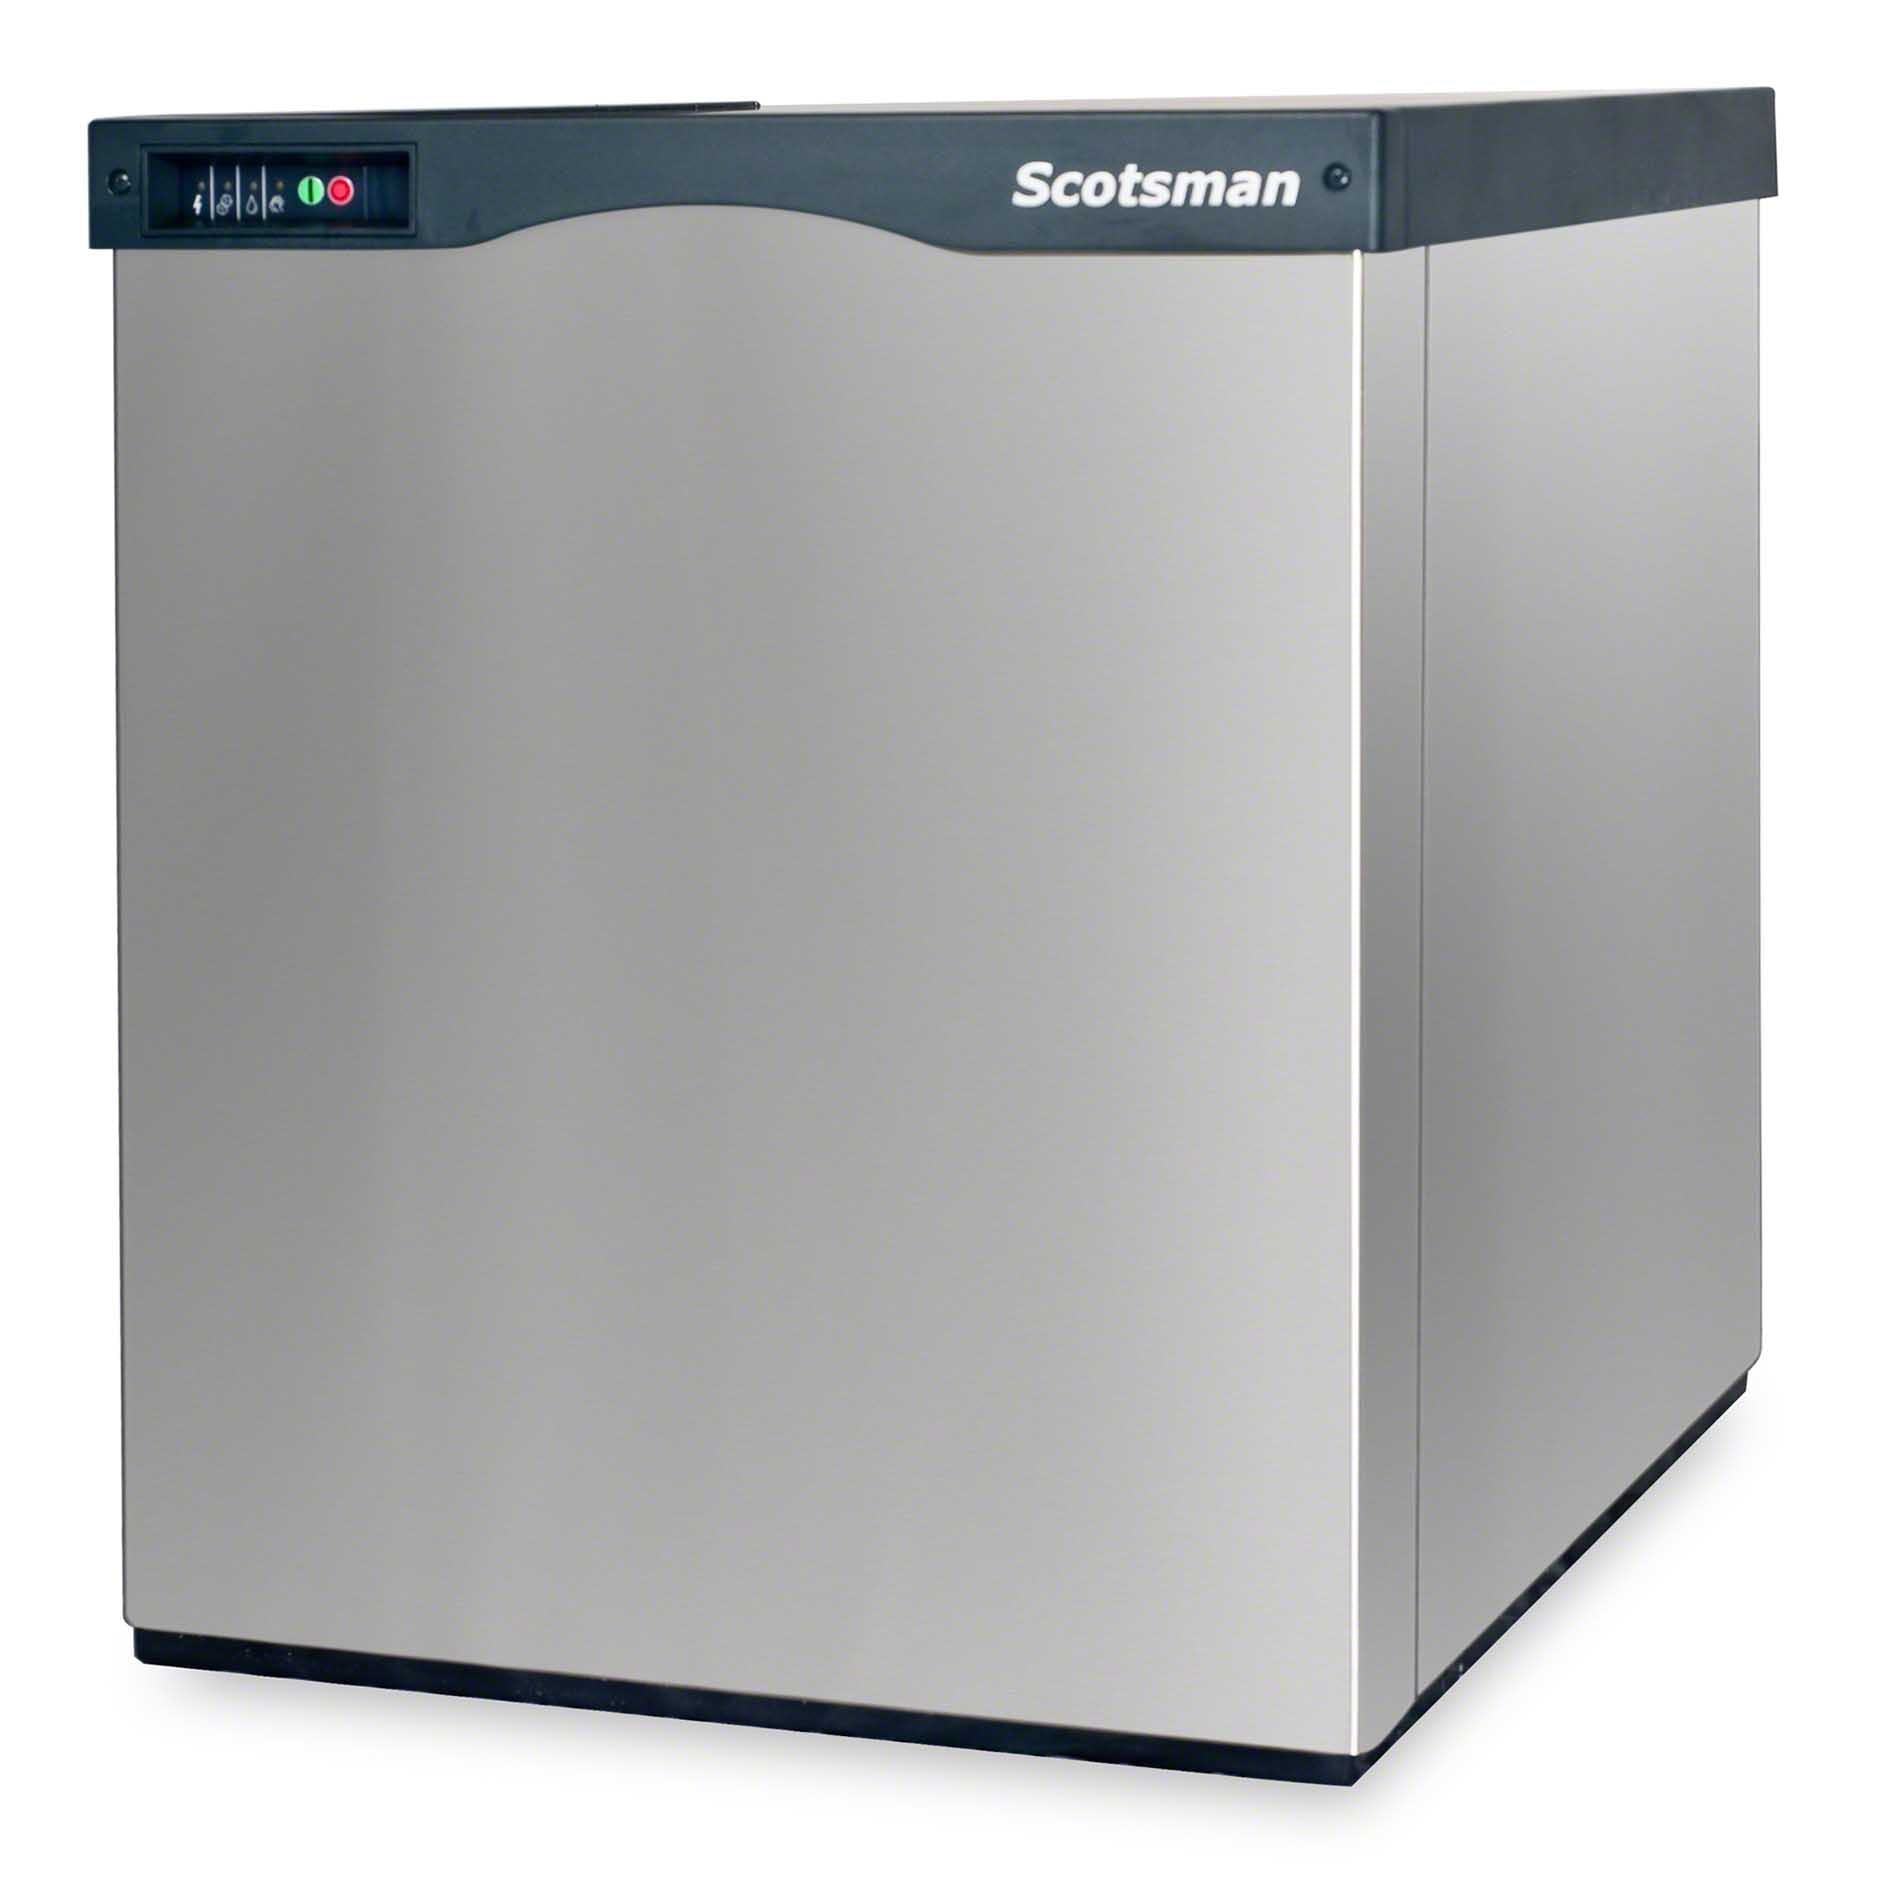 Scotsman - F1222R-3A 1250 lb Flake Ice Machine - Prodigy Series - sold by Food Service Warehouse